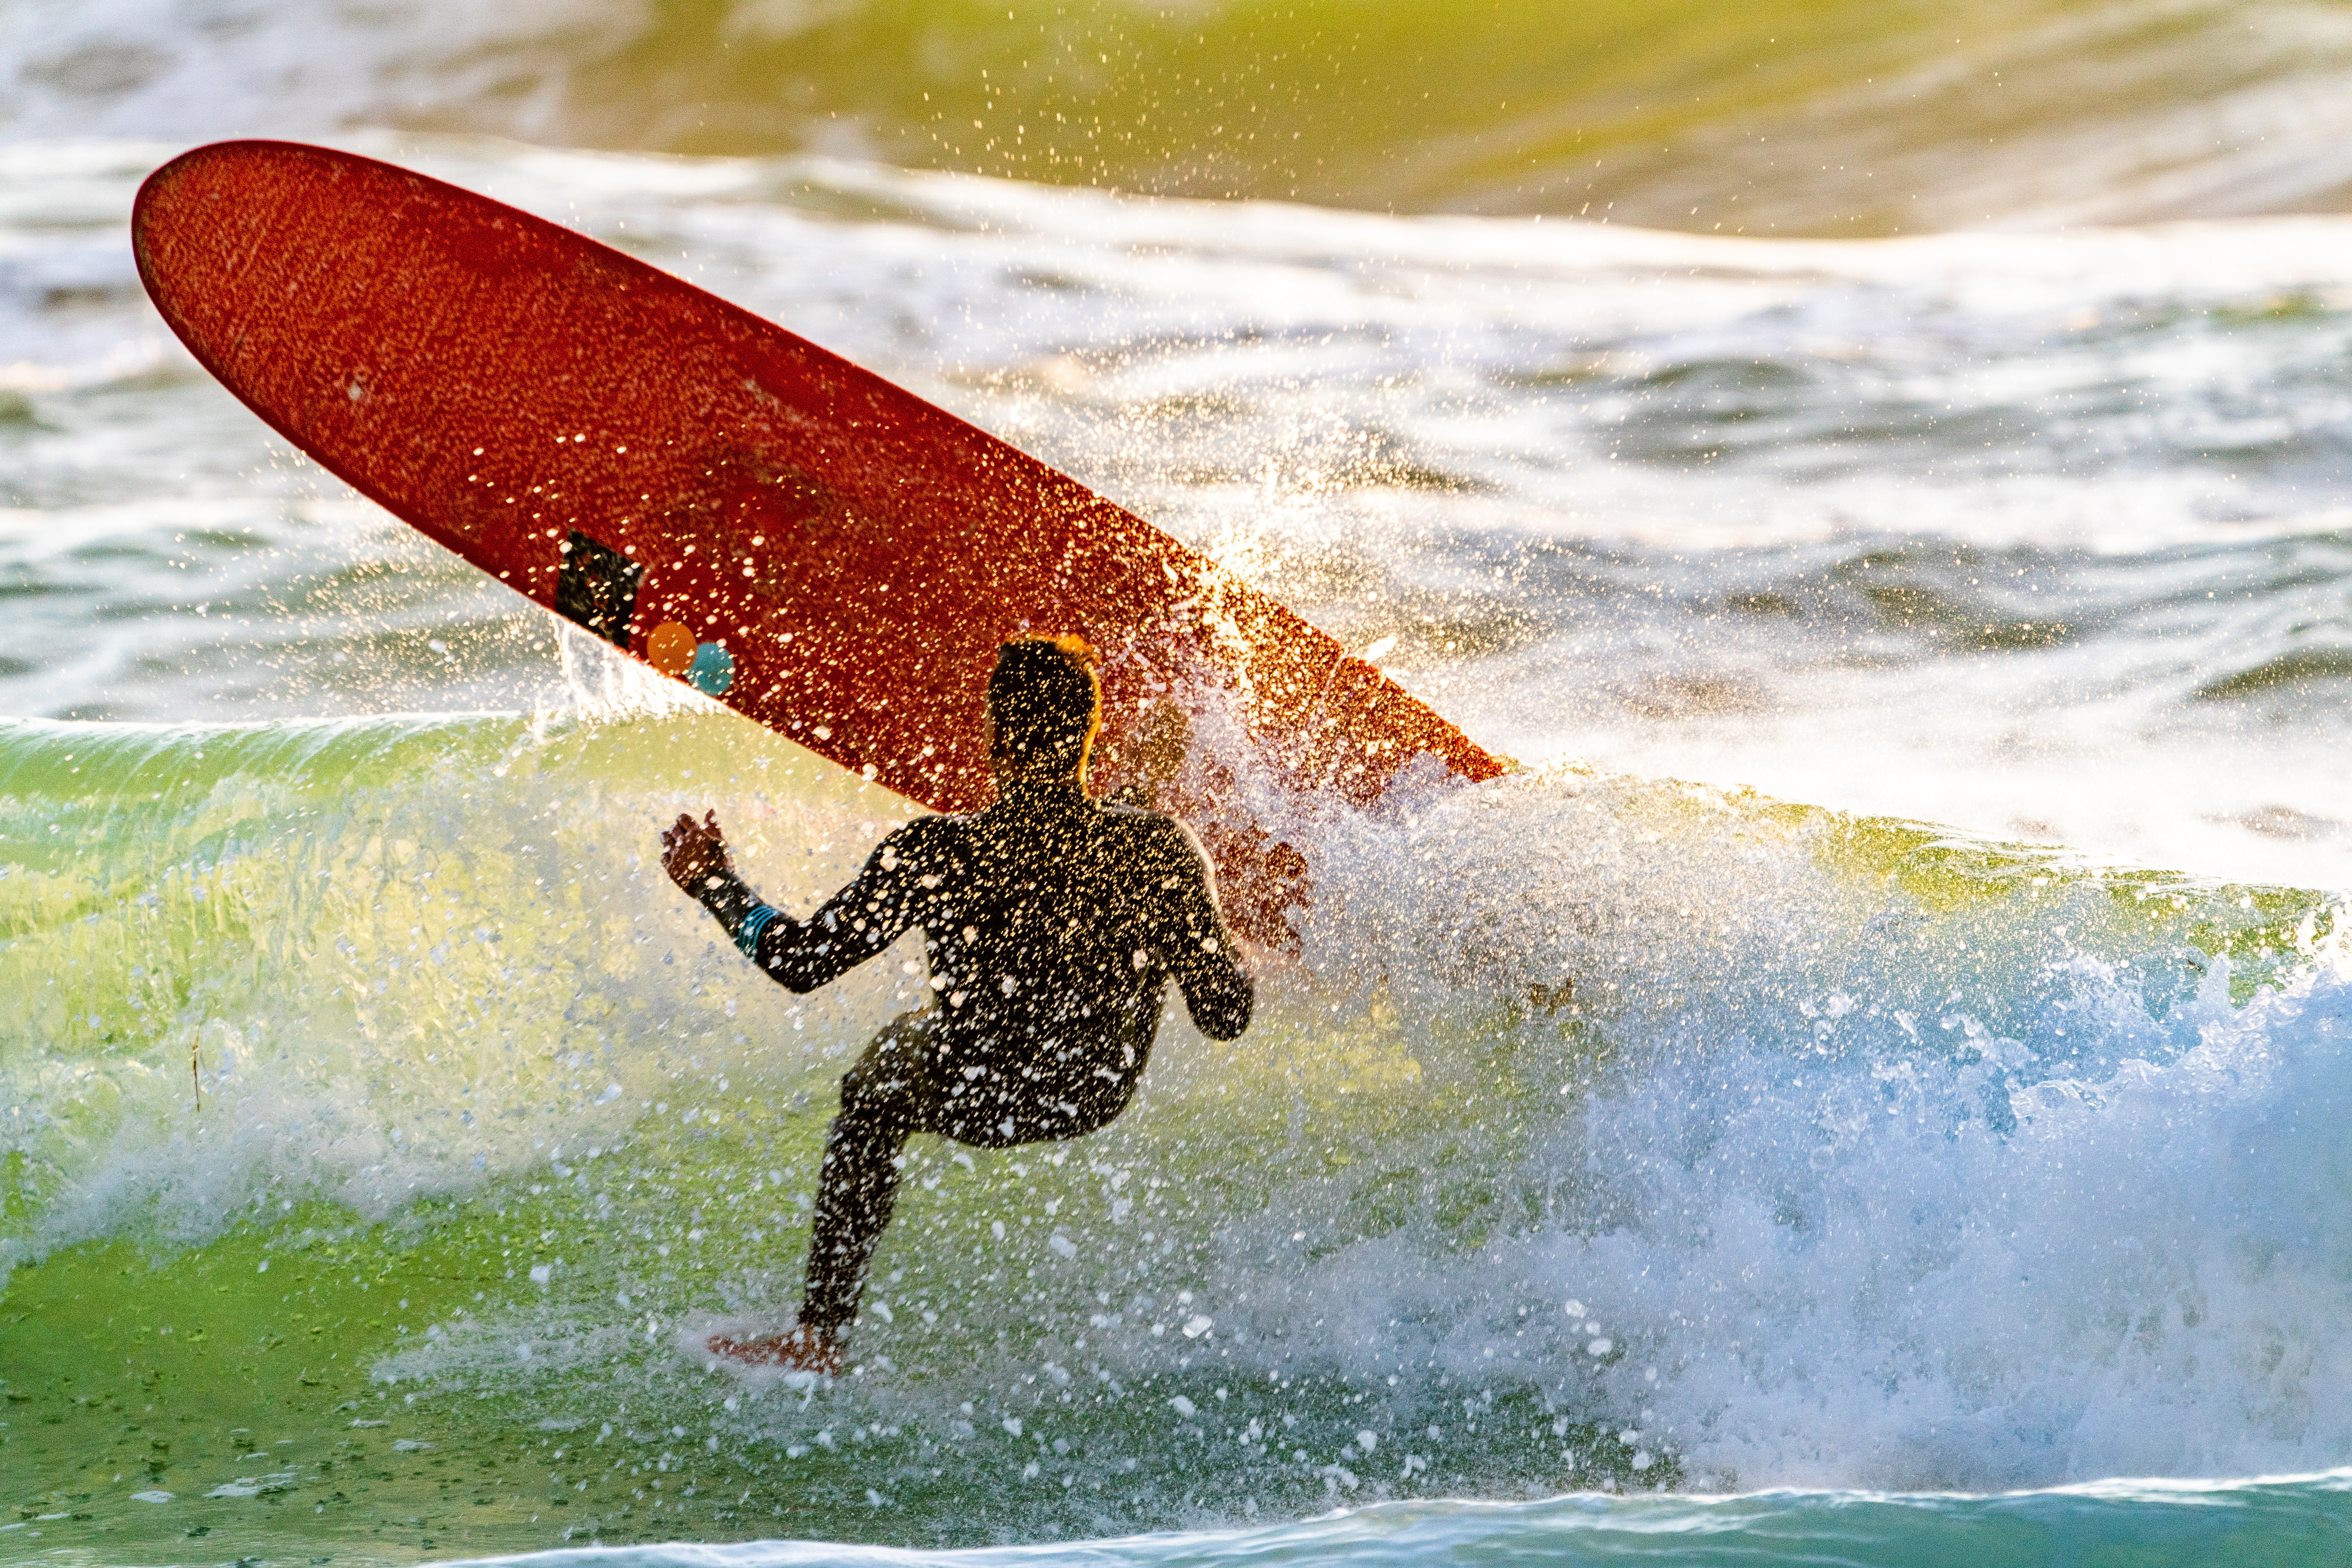 surfer bailing out on board